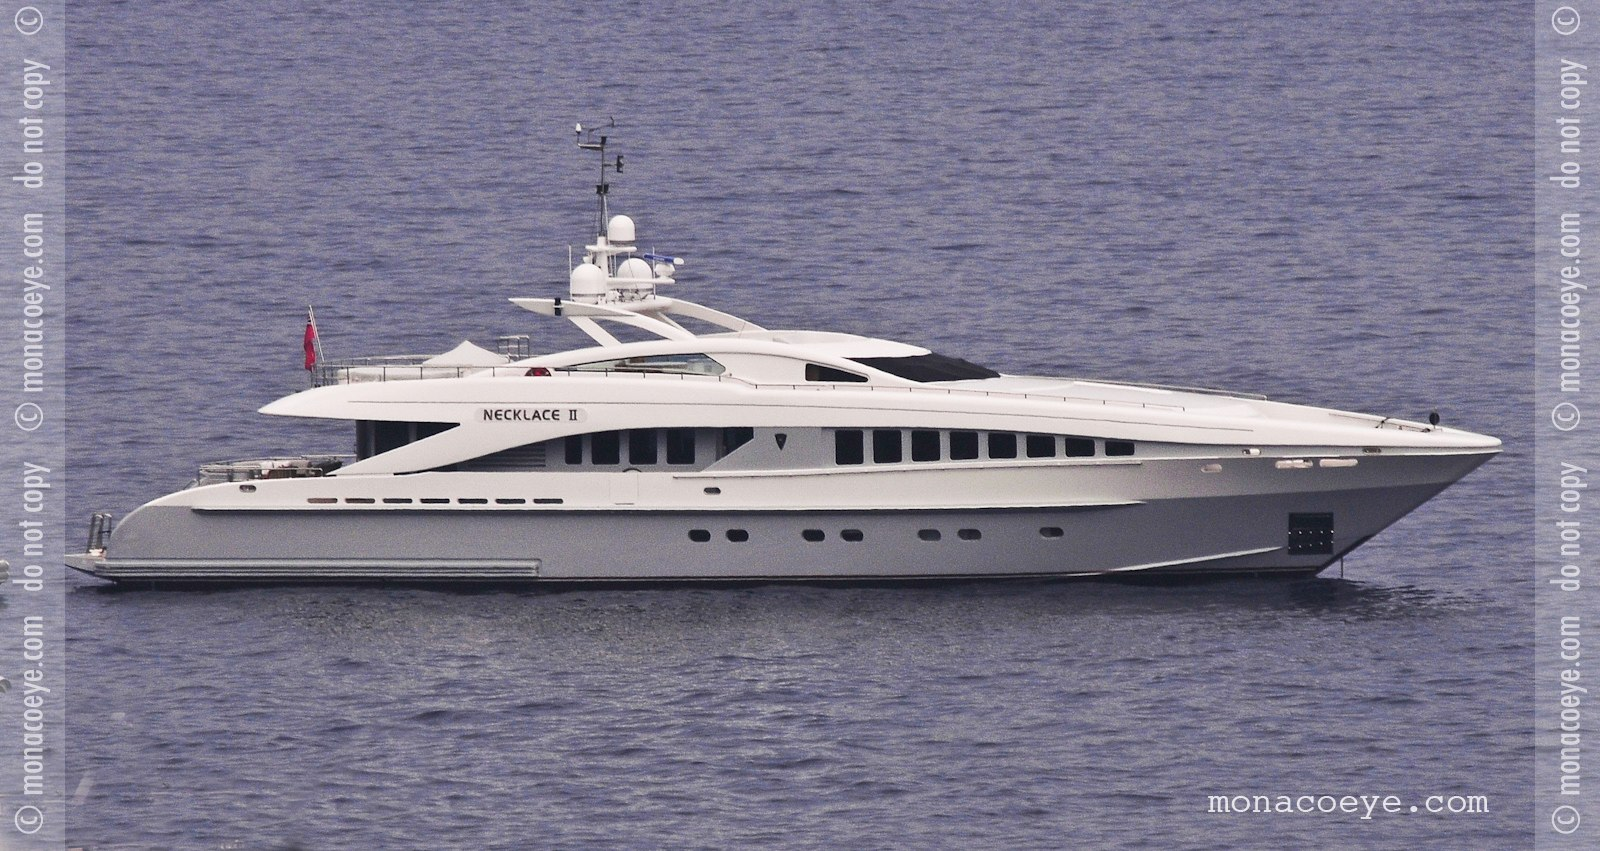 Necklace II, yacht from Heesen. Build number 12137, 2004, 37 metres. Ex Lady Ingeborg